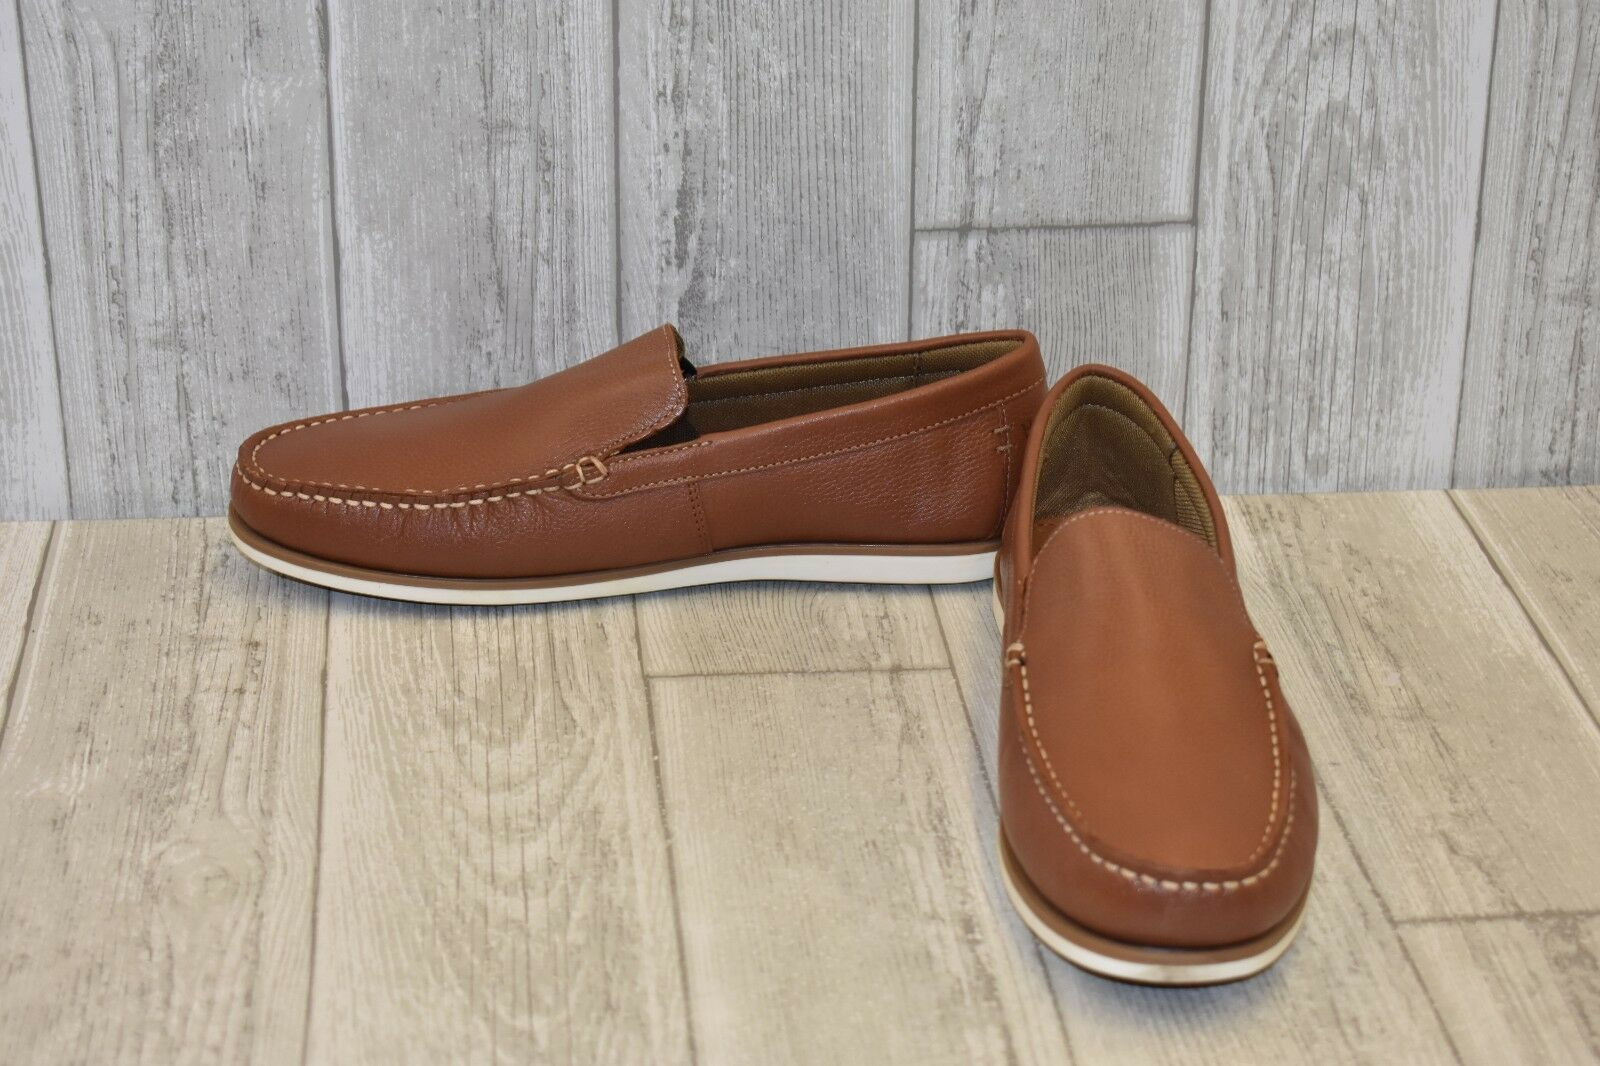 Hush Puppies- Bob Portland Loafer, Men's Size 8.5 EW, Tan